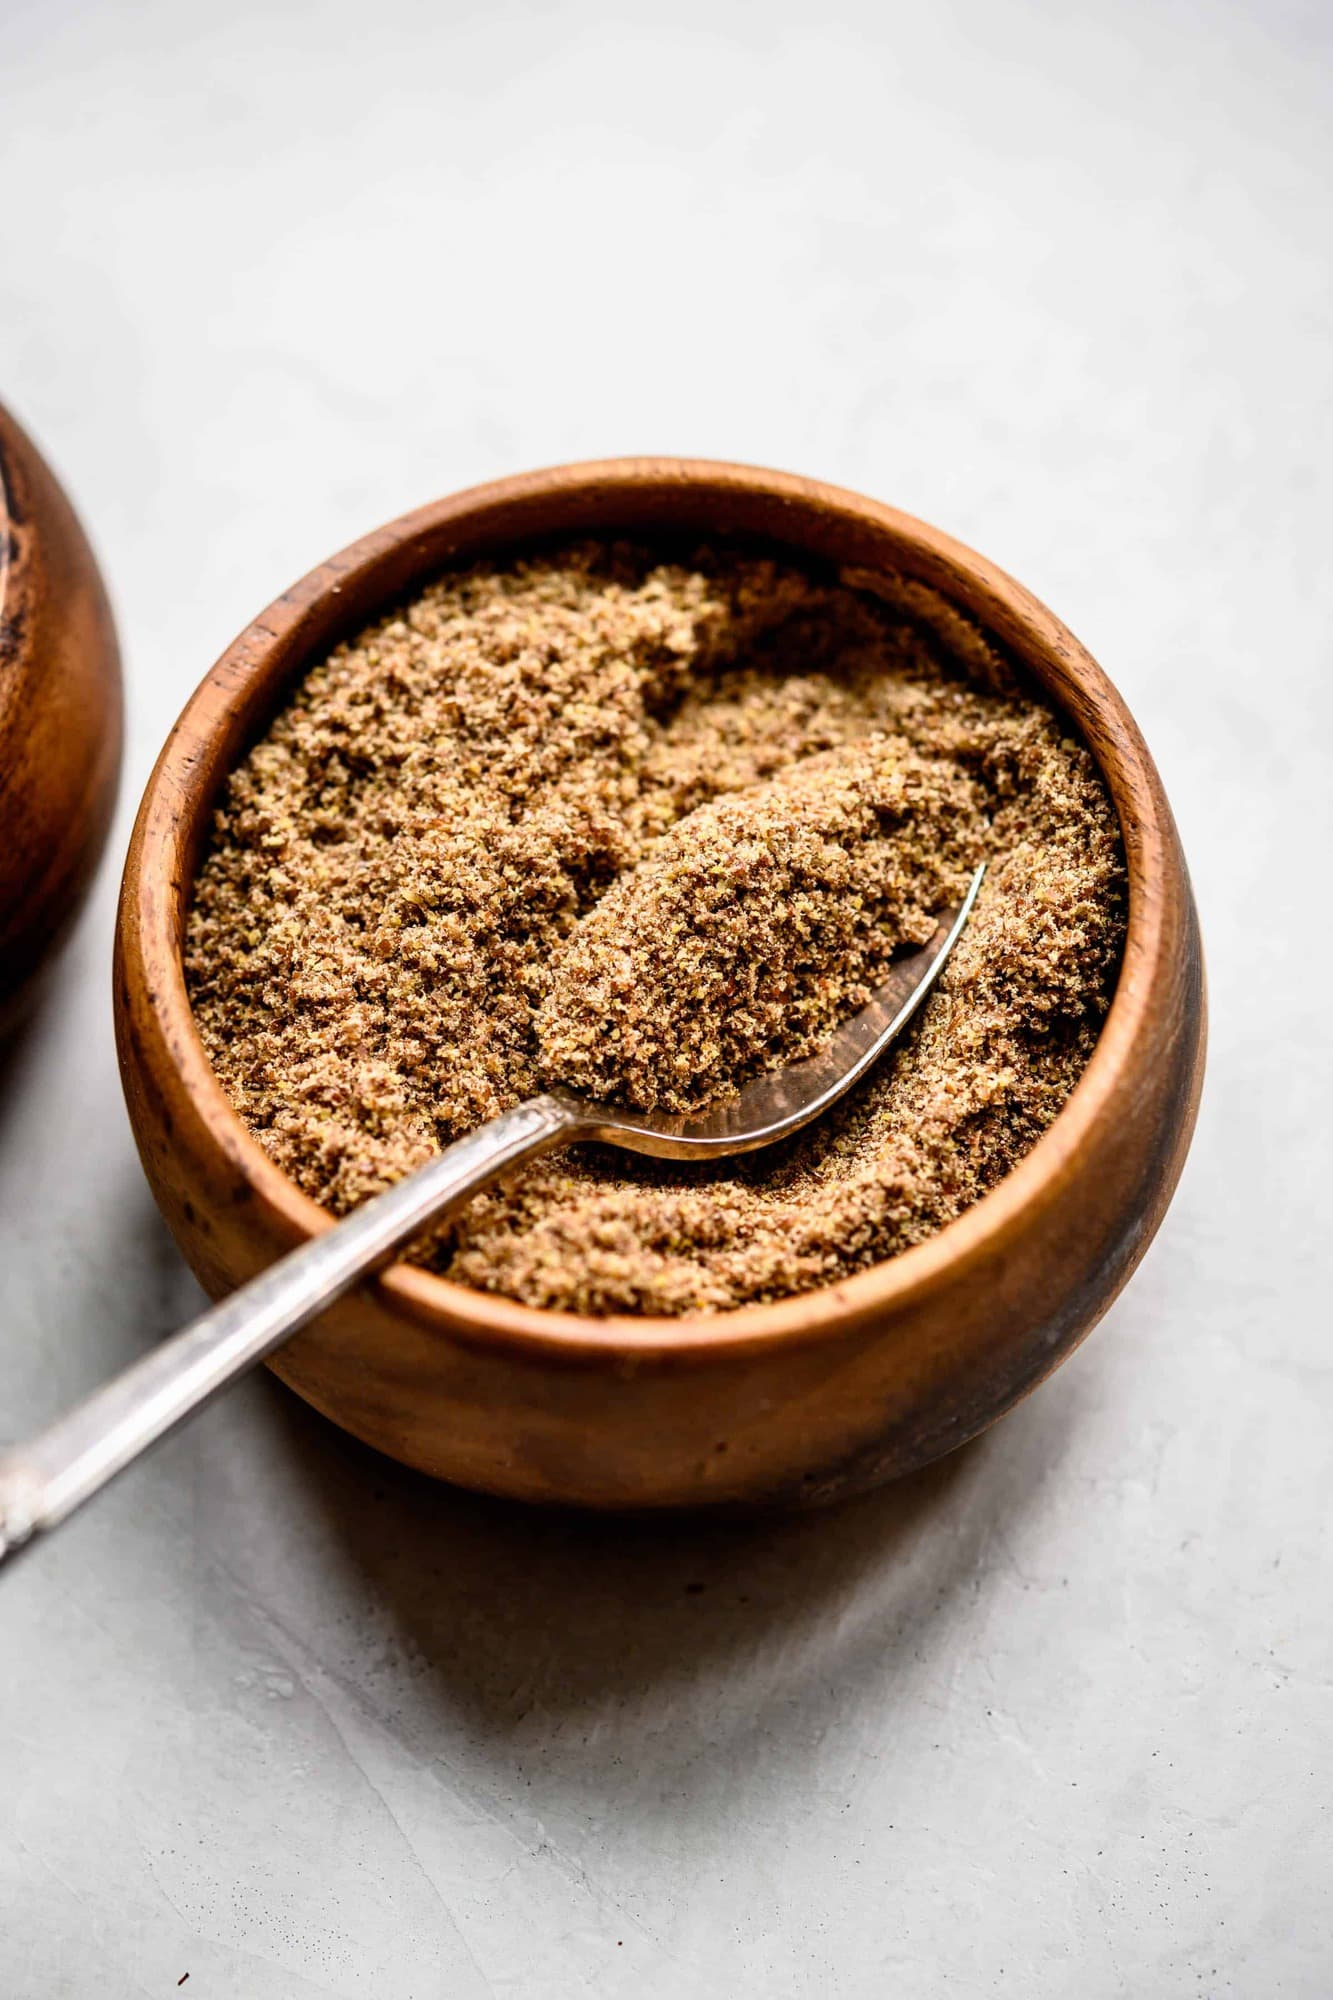 Close up side view of flax meal in a small wooden bowl